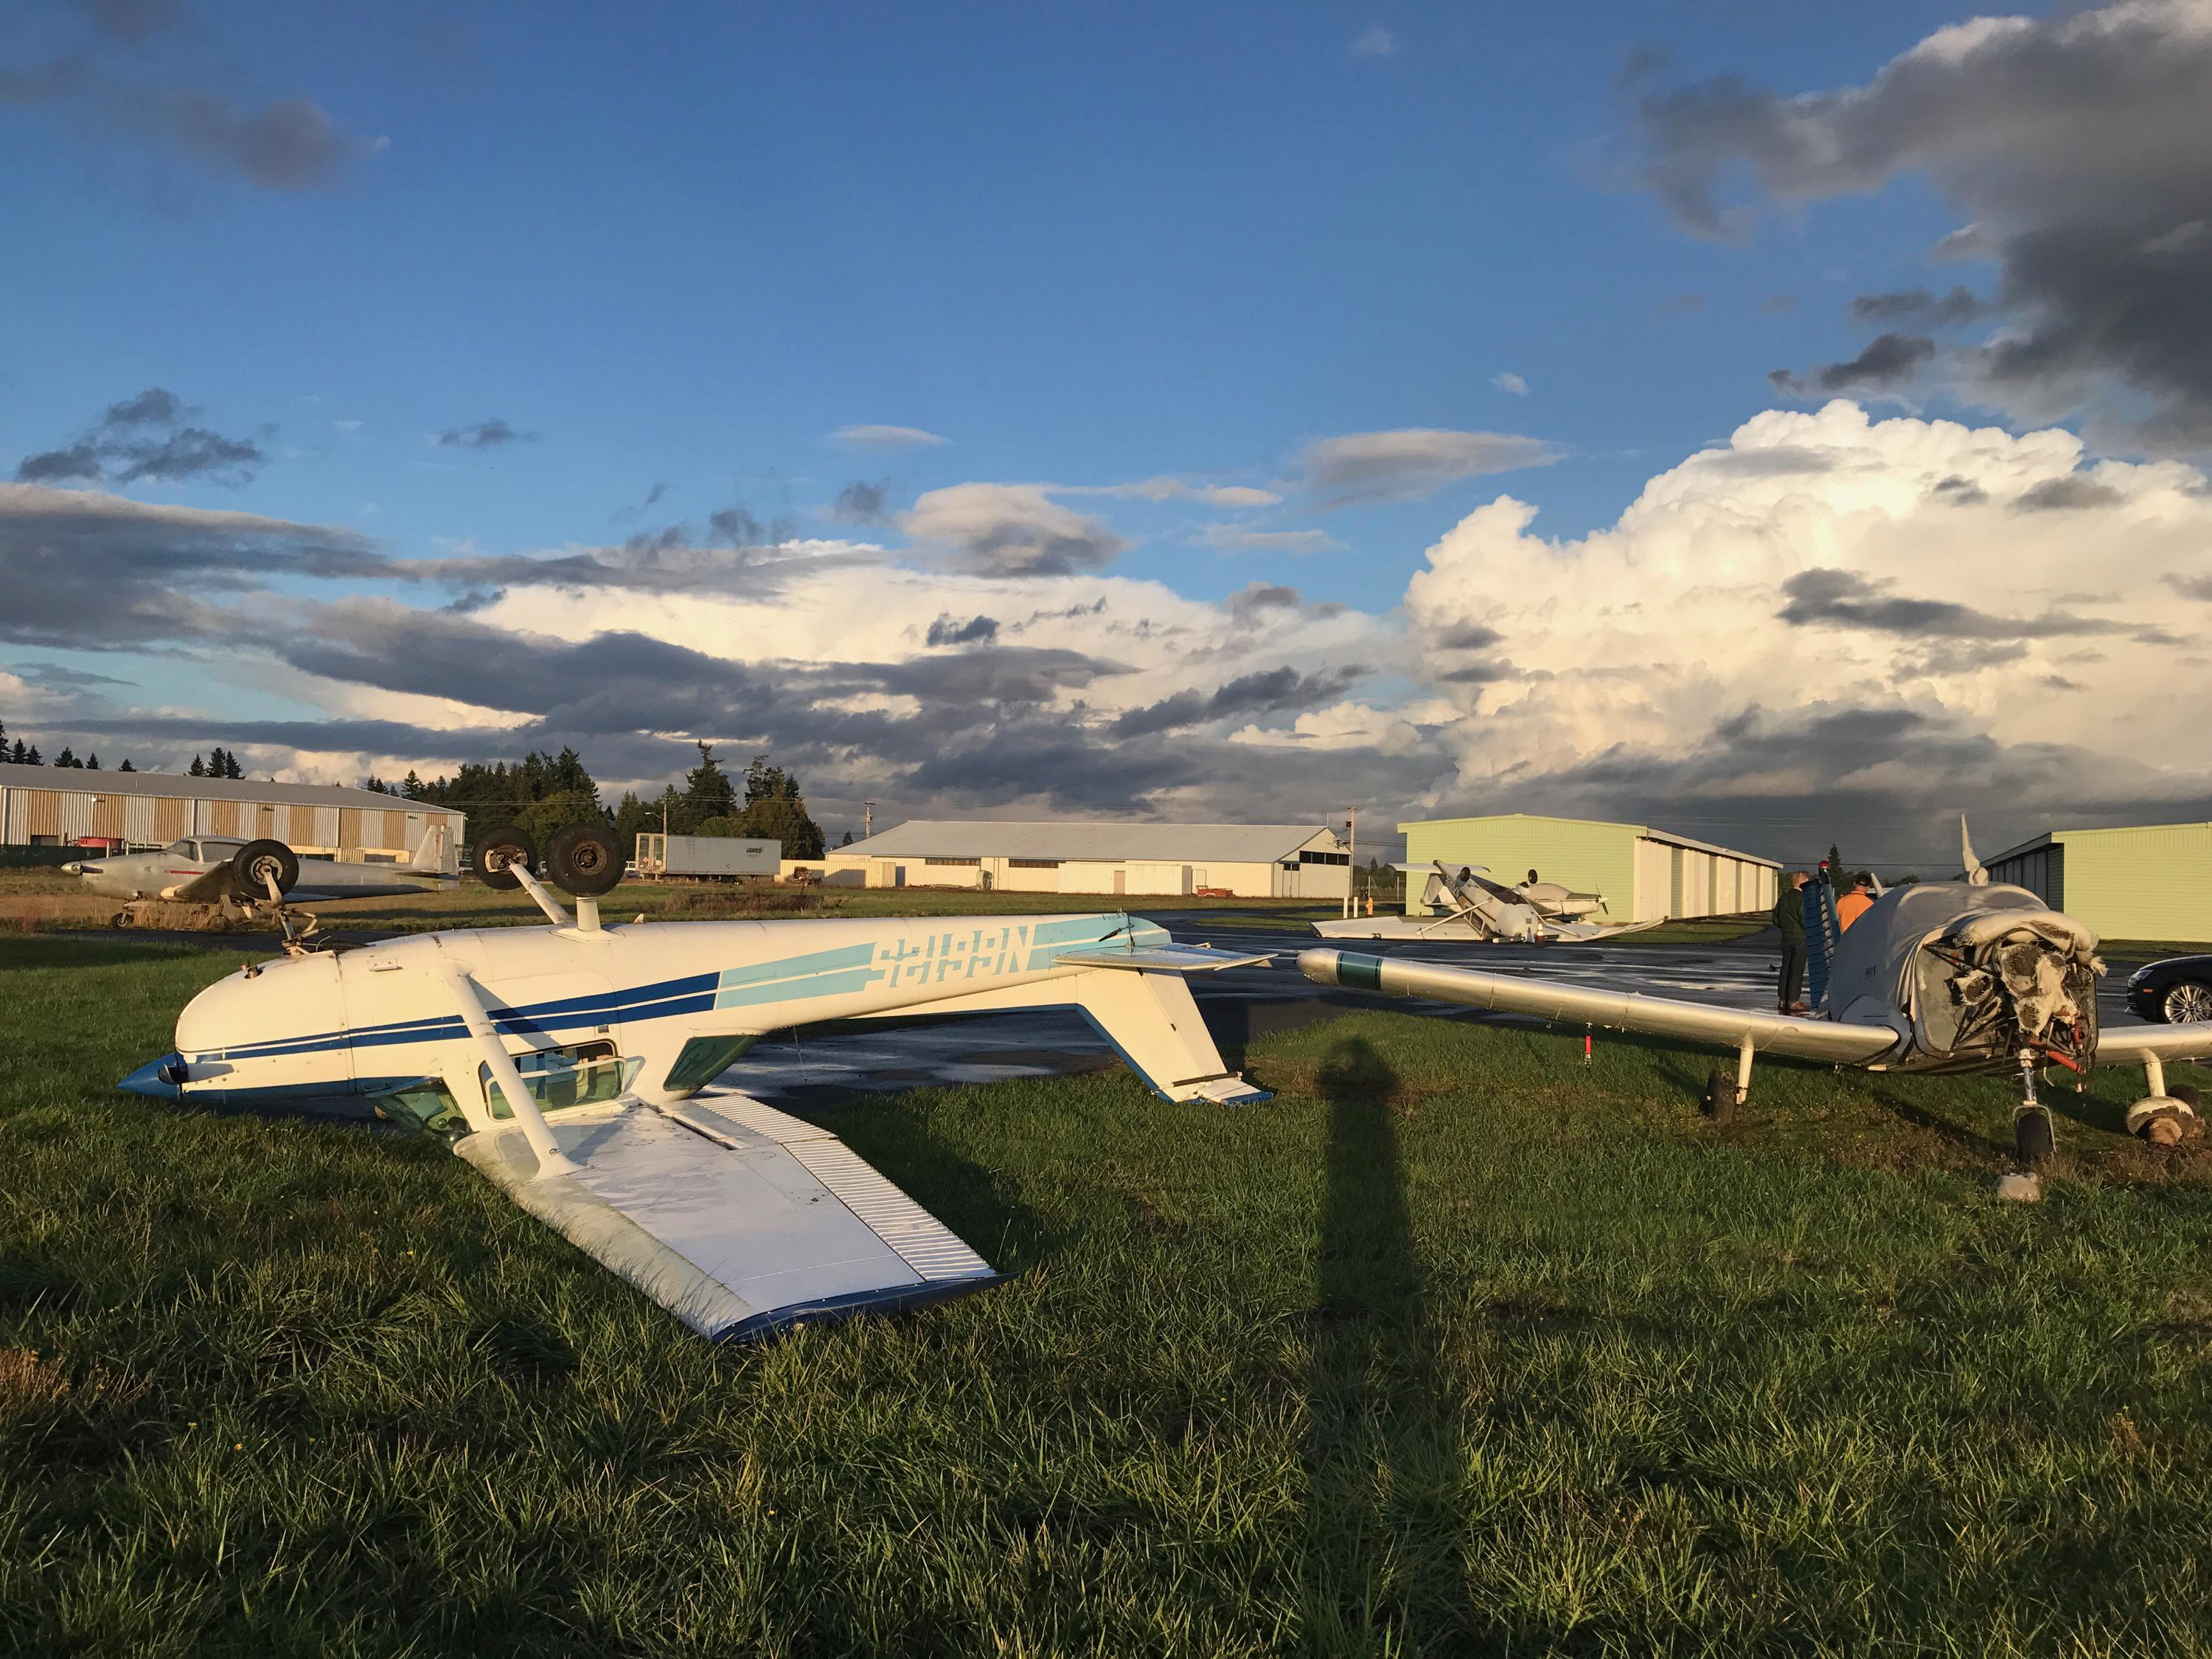 A small tornado flipped over this plane and one other at the Aurora State Airport on Thursday afternoon, Oct. 12, 2017. It also caused minor damage to a building and a nearby greenhouse. (Photo: Aurora Aviation Inc.)